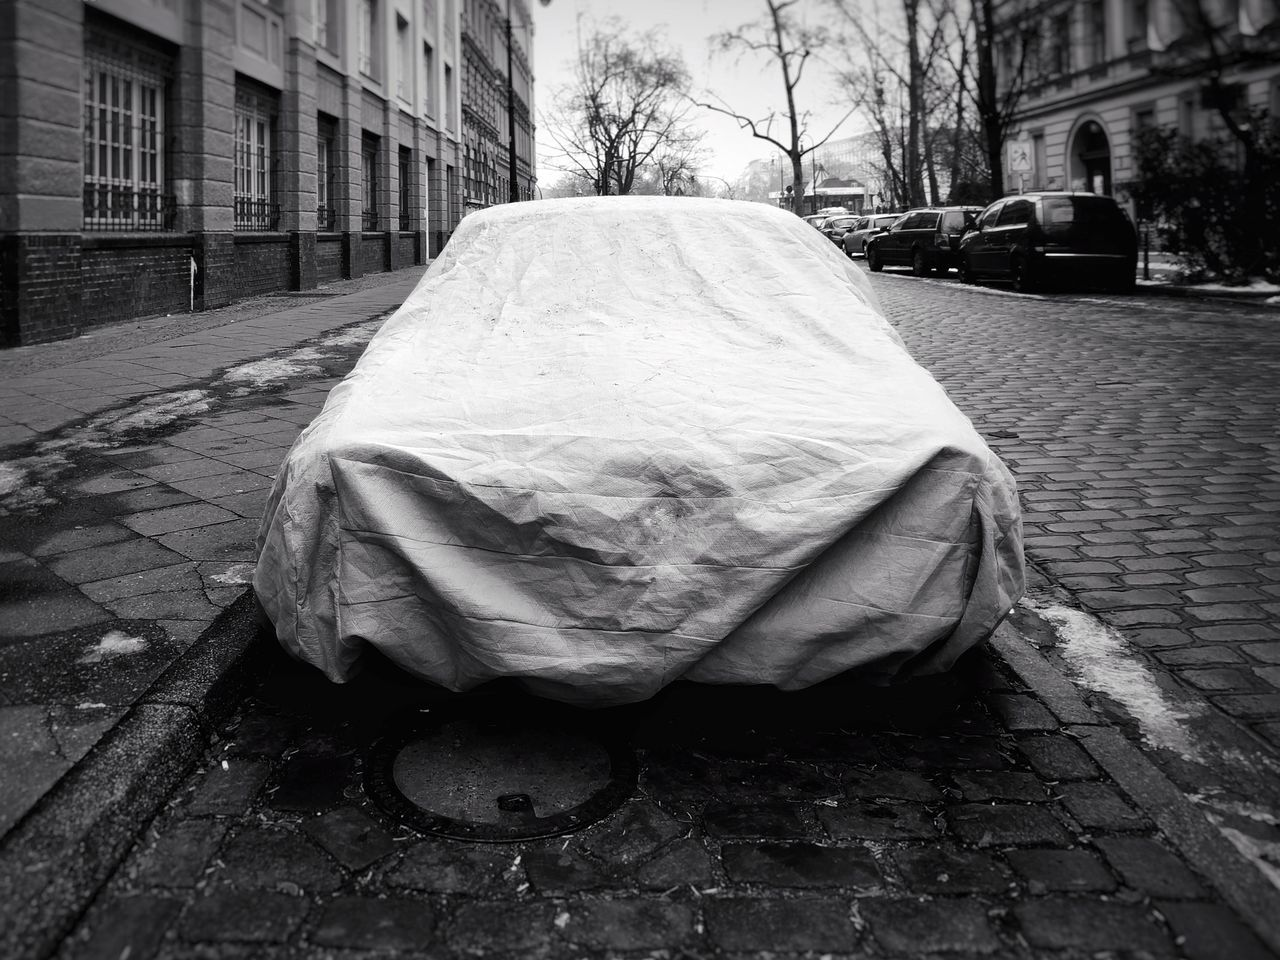 I Got You Covered . Building Exterior Architecture Built Structure City No People Day Outdoors Protecting Protection Black And White Vintage Cars Cover Covering Covered Wintertime Front View Artistic Secrets Car City Architecture Softgarage Car Show Streetportrait